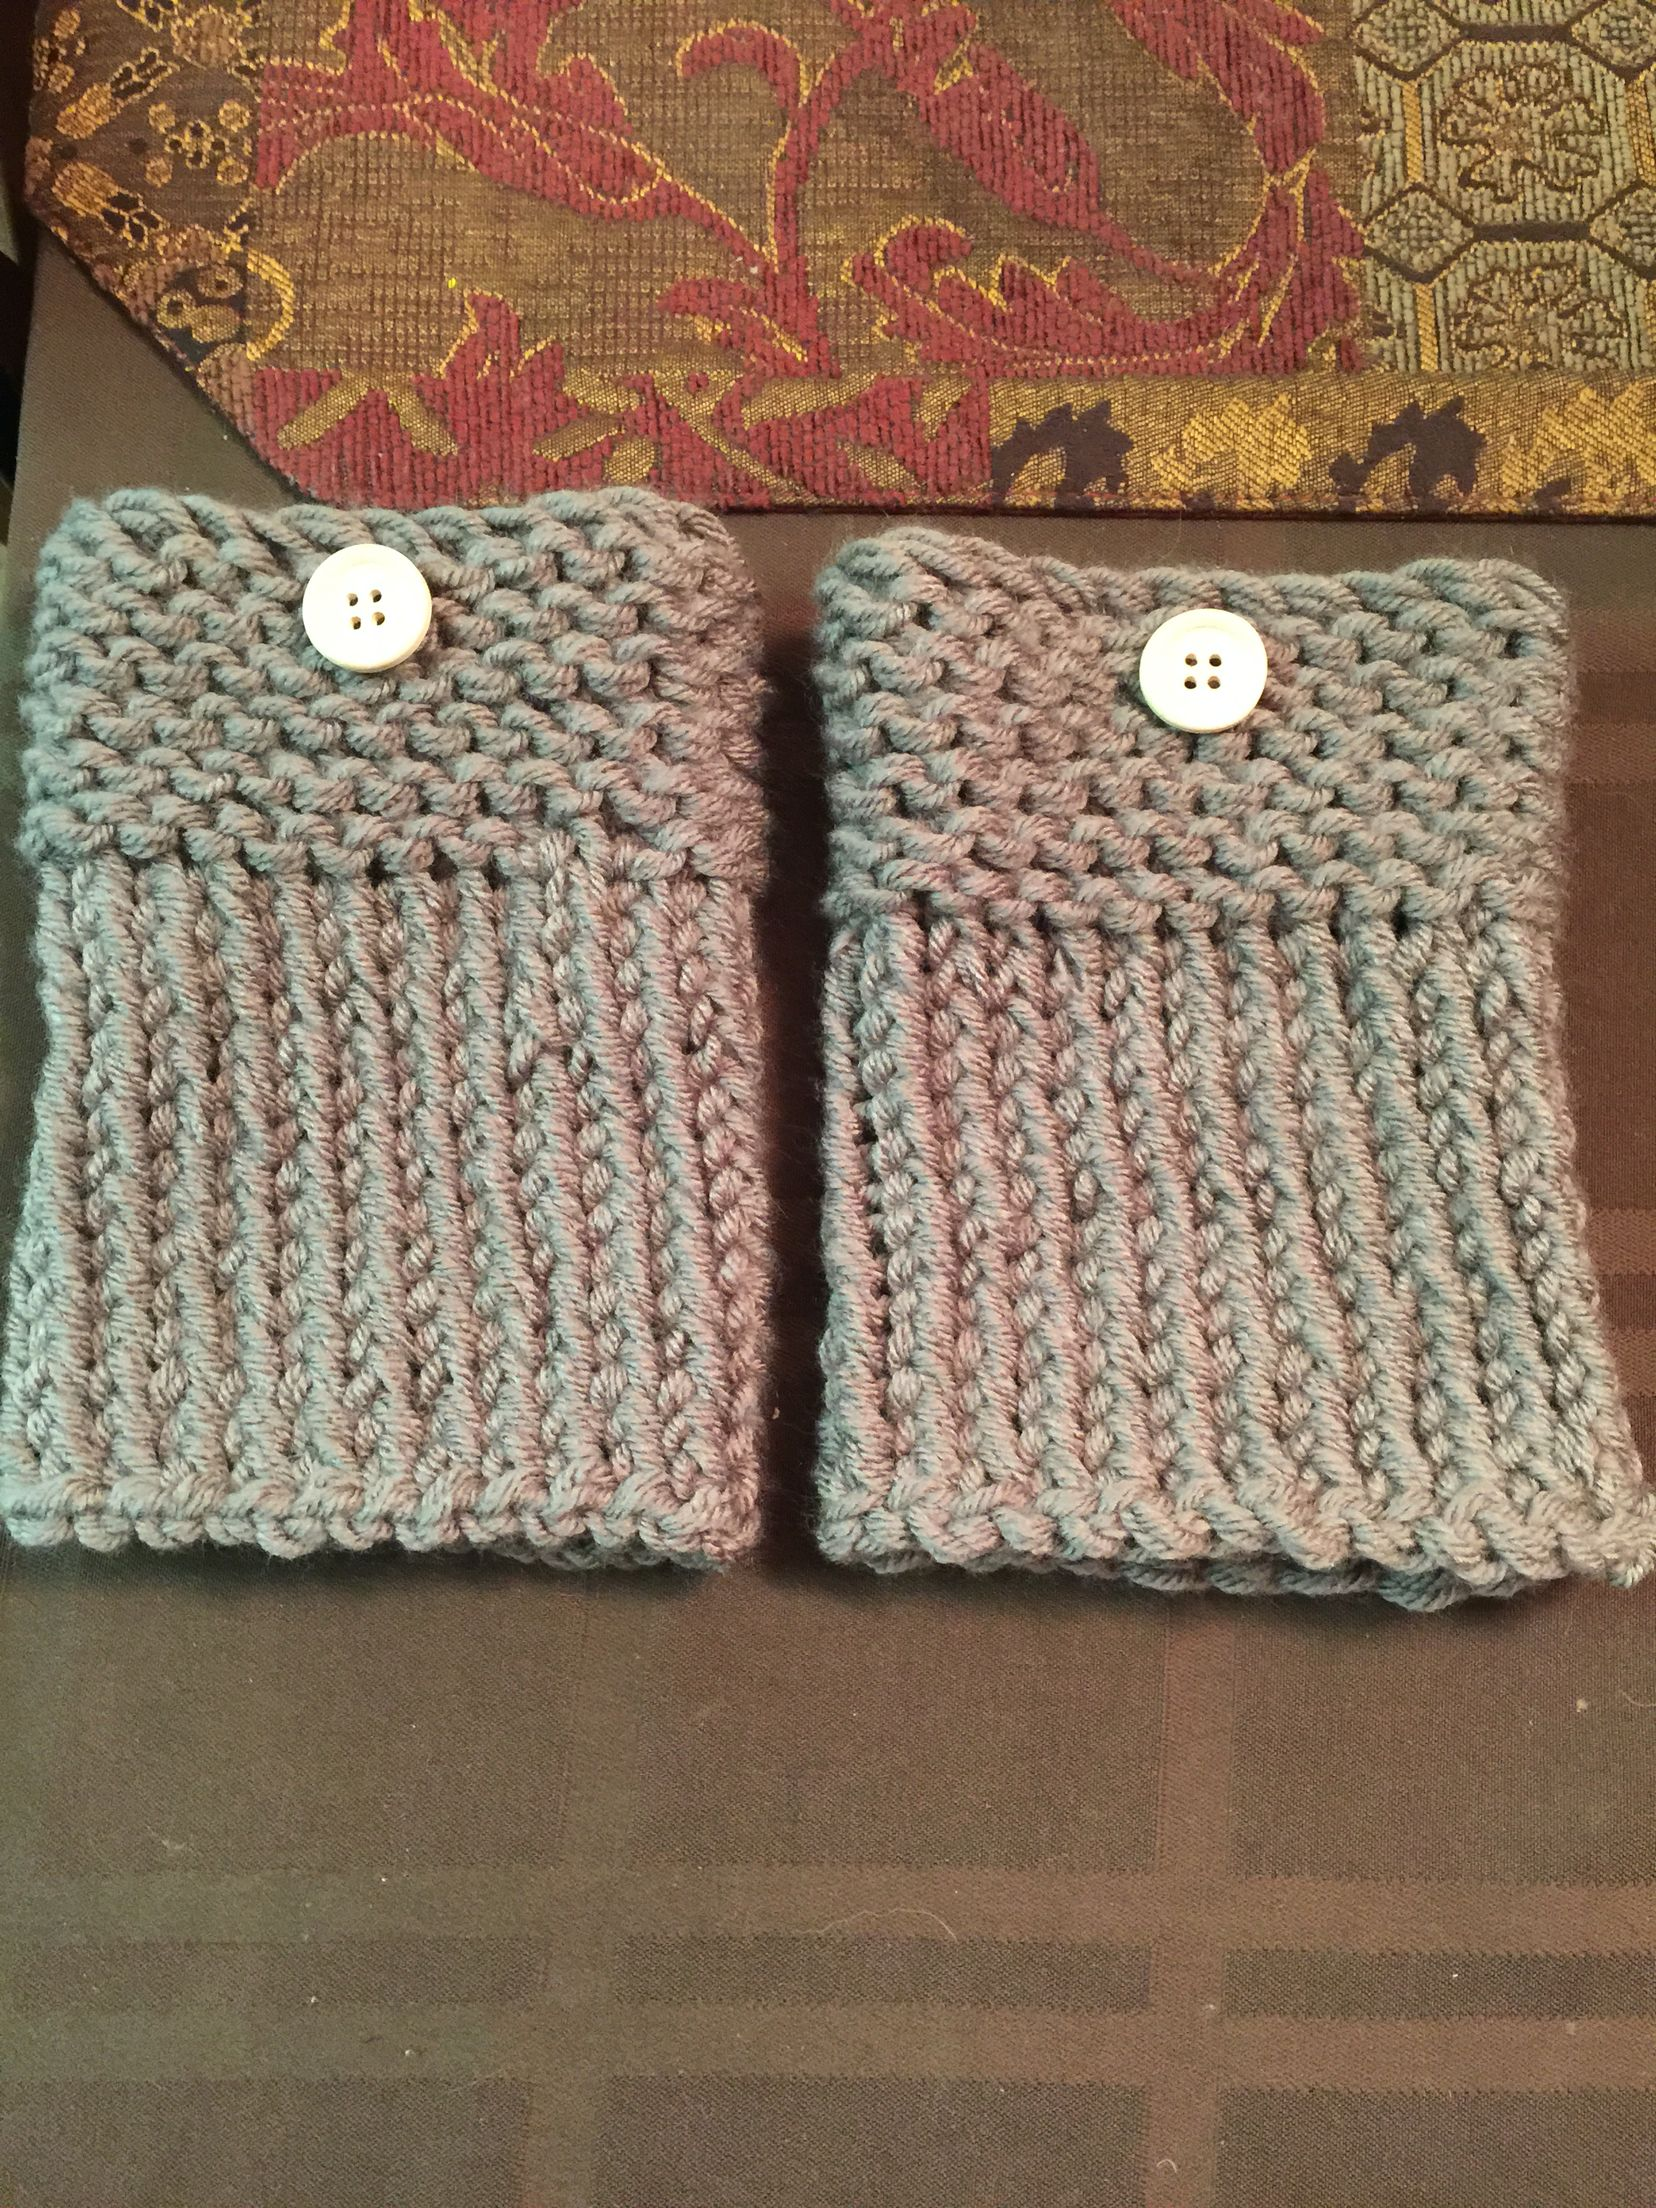 Loom Knitted Boot Cuffs My Crochet Projects Pinterest Loom